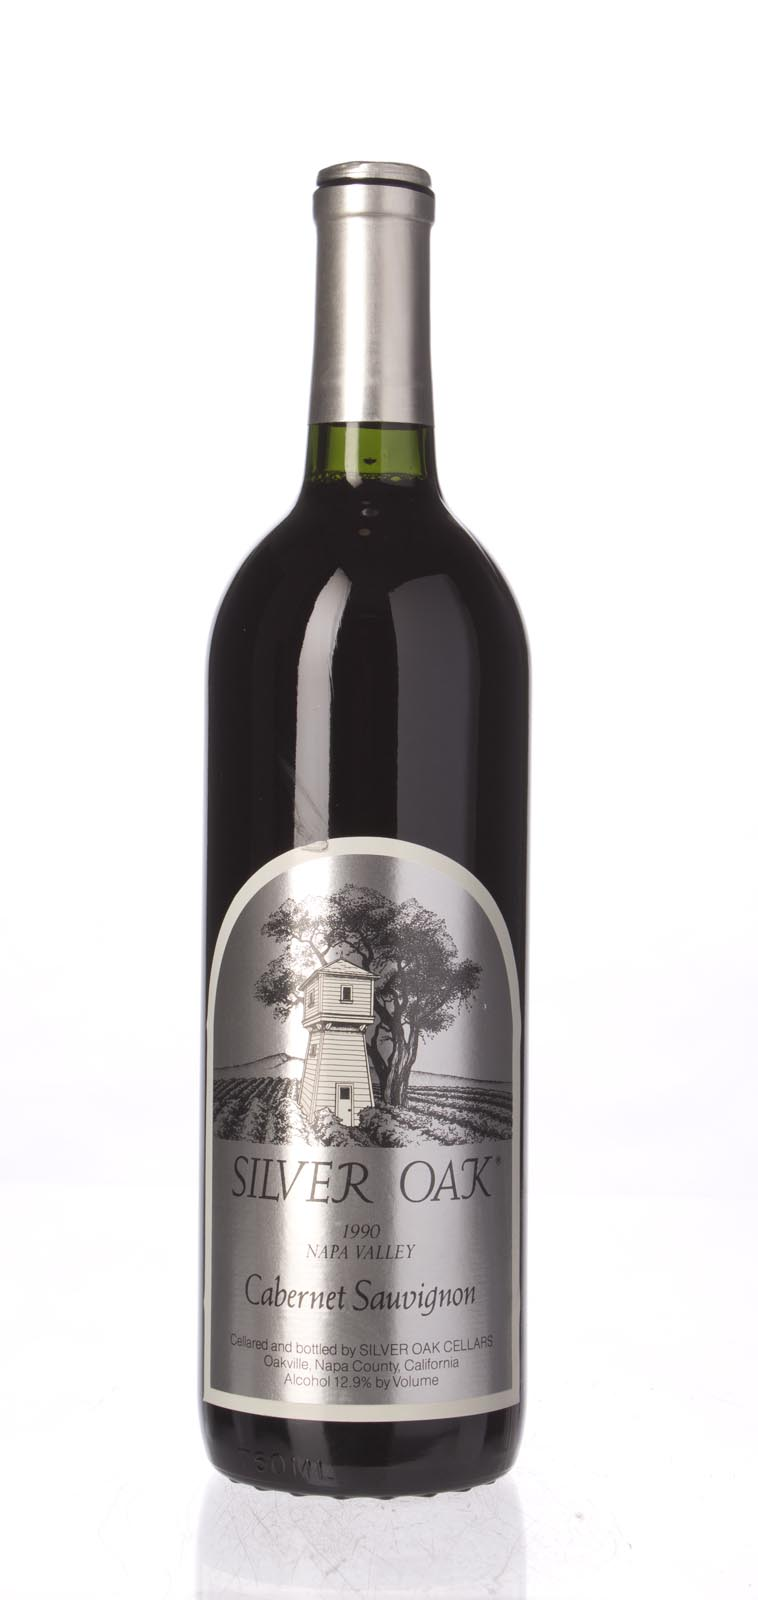 Silver Oak Cabernet Sauvignon Napa Valley 1990, 750mL (WA93) from The BPW - Merchants of rare and fine wines.